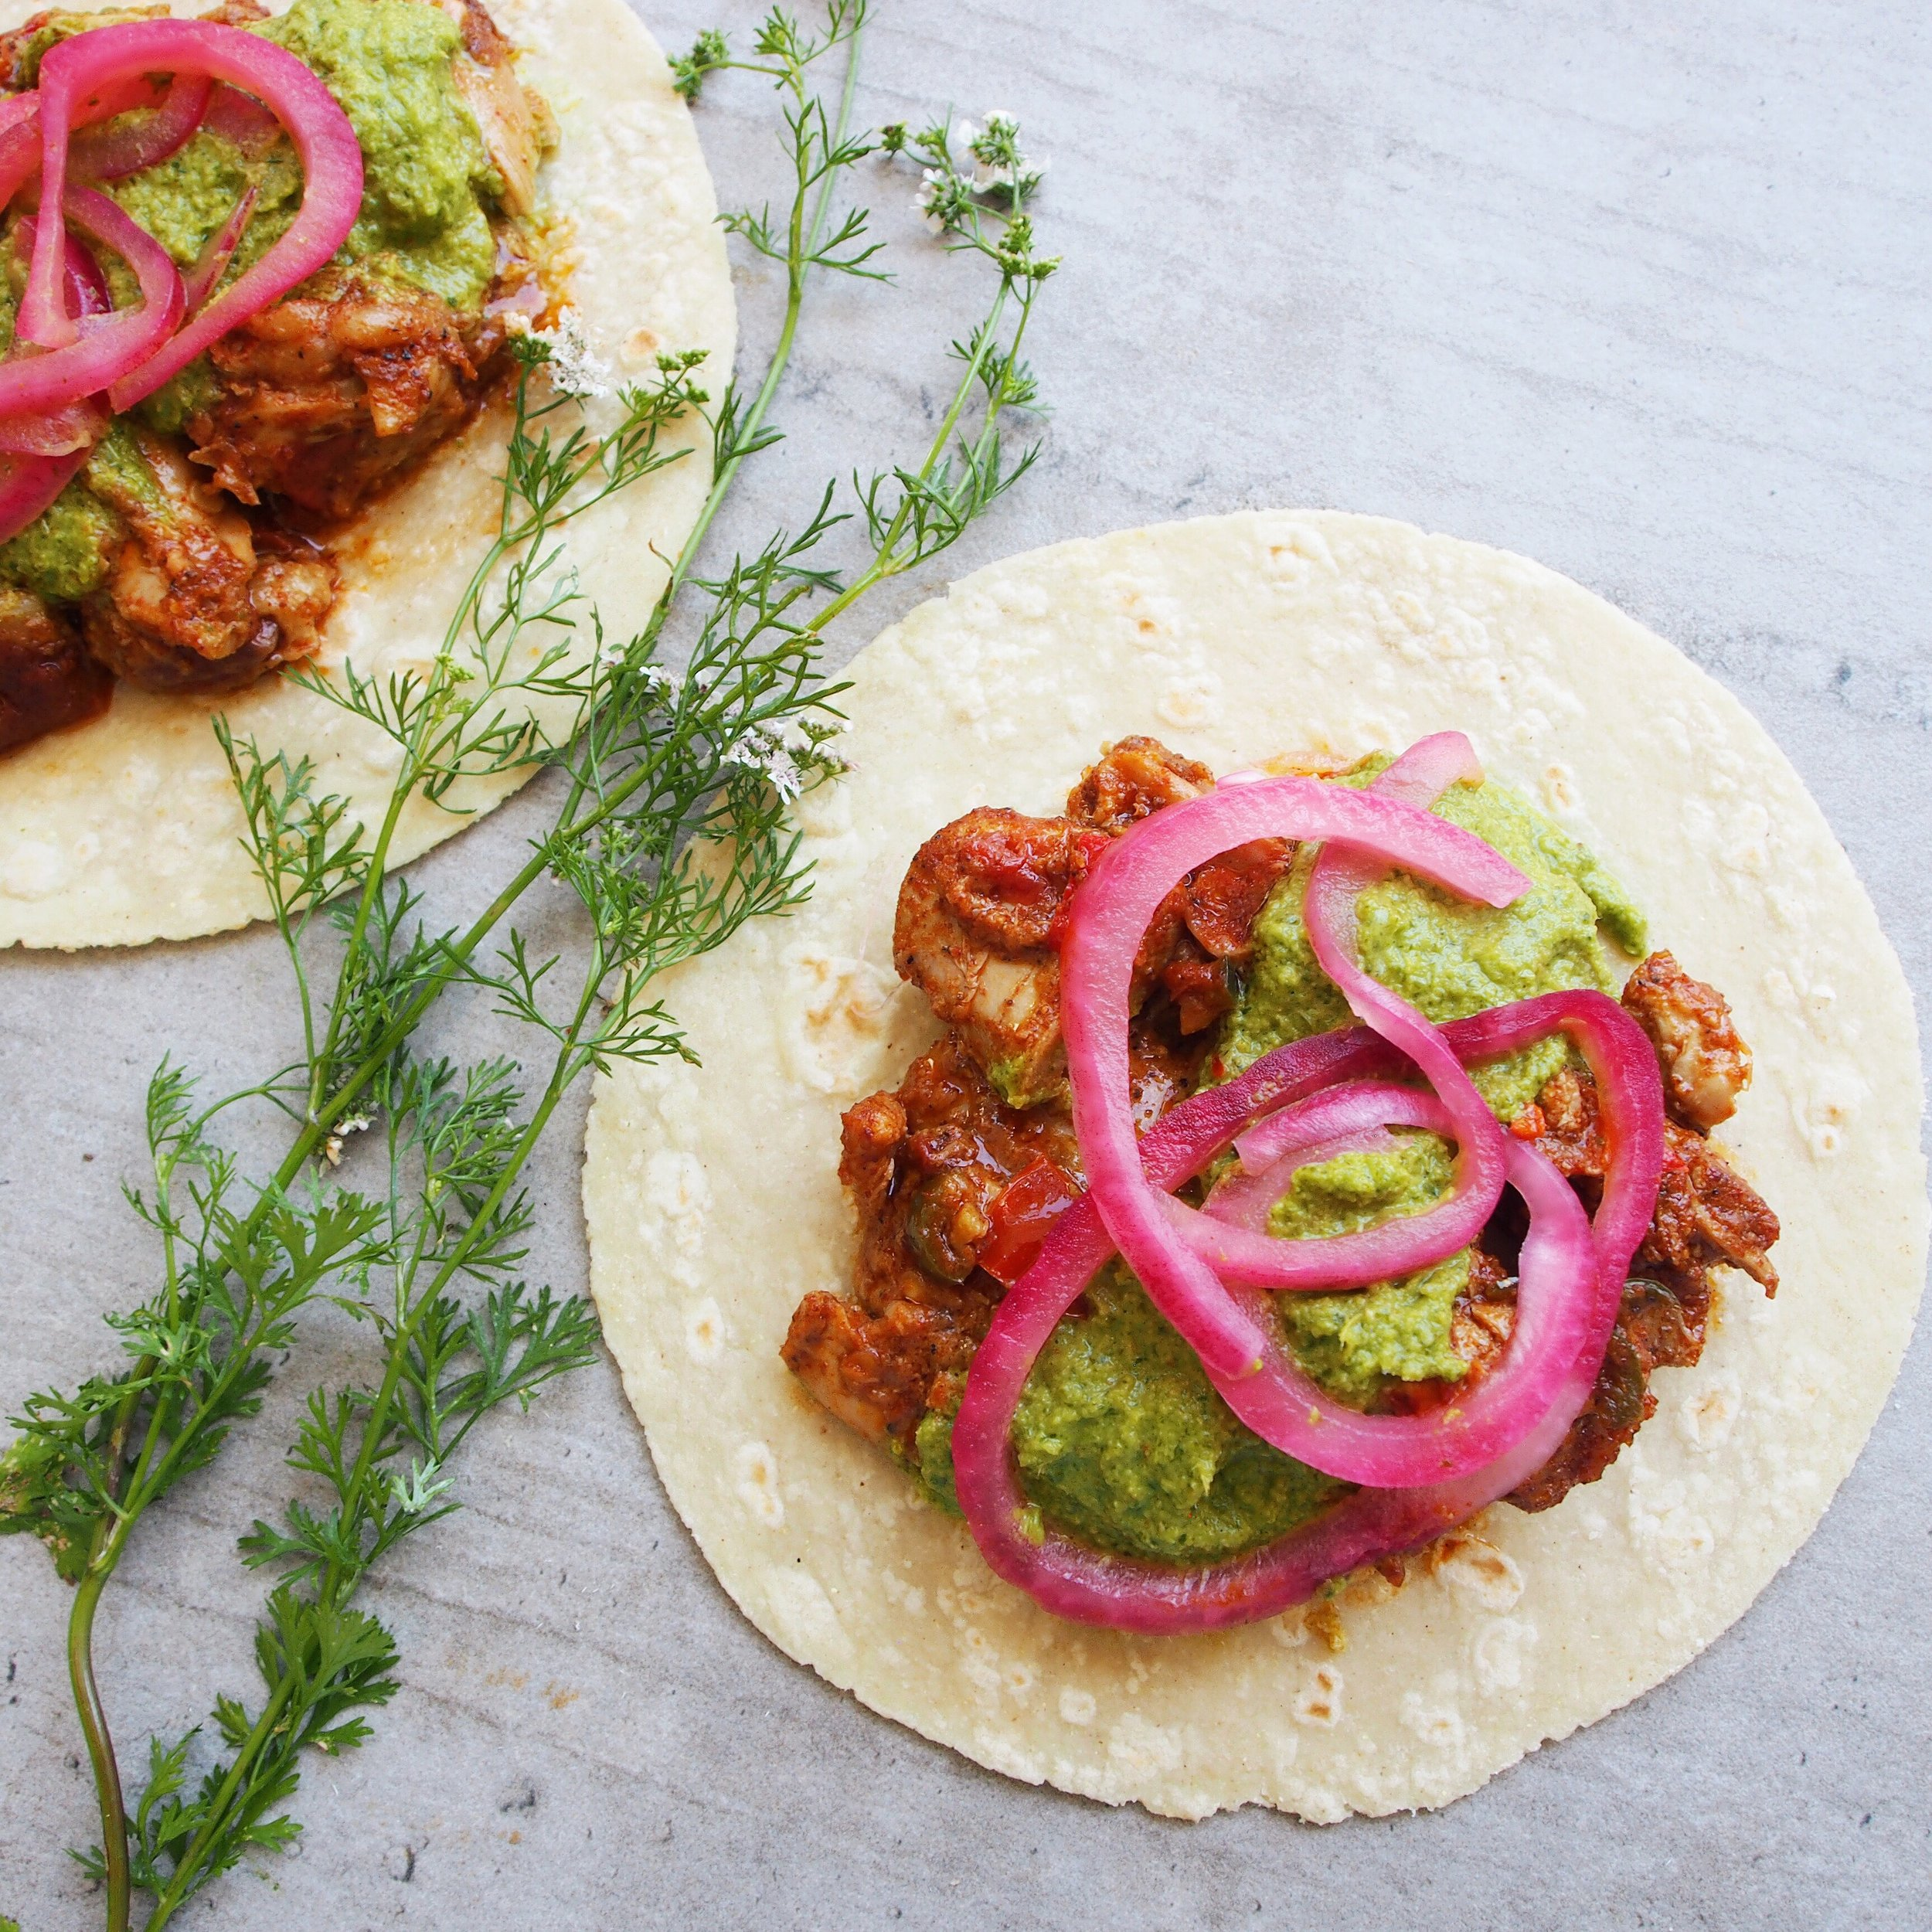 A recipe for chicken tikka masala tacos using Life is a Recipe's Chicken Tikka Masala Kit! The taco recipe is served with green chutney and pickled red onions.